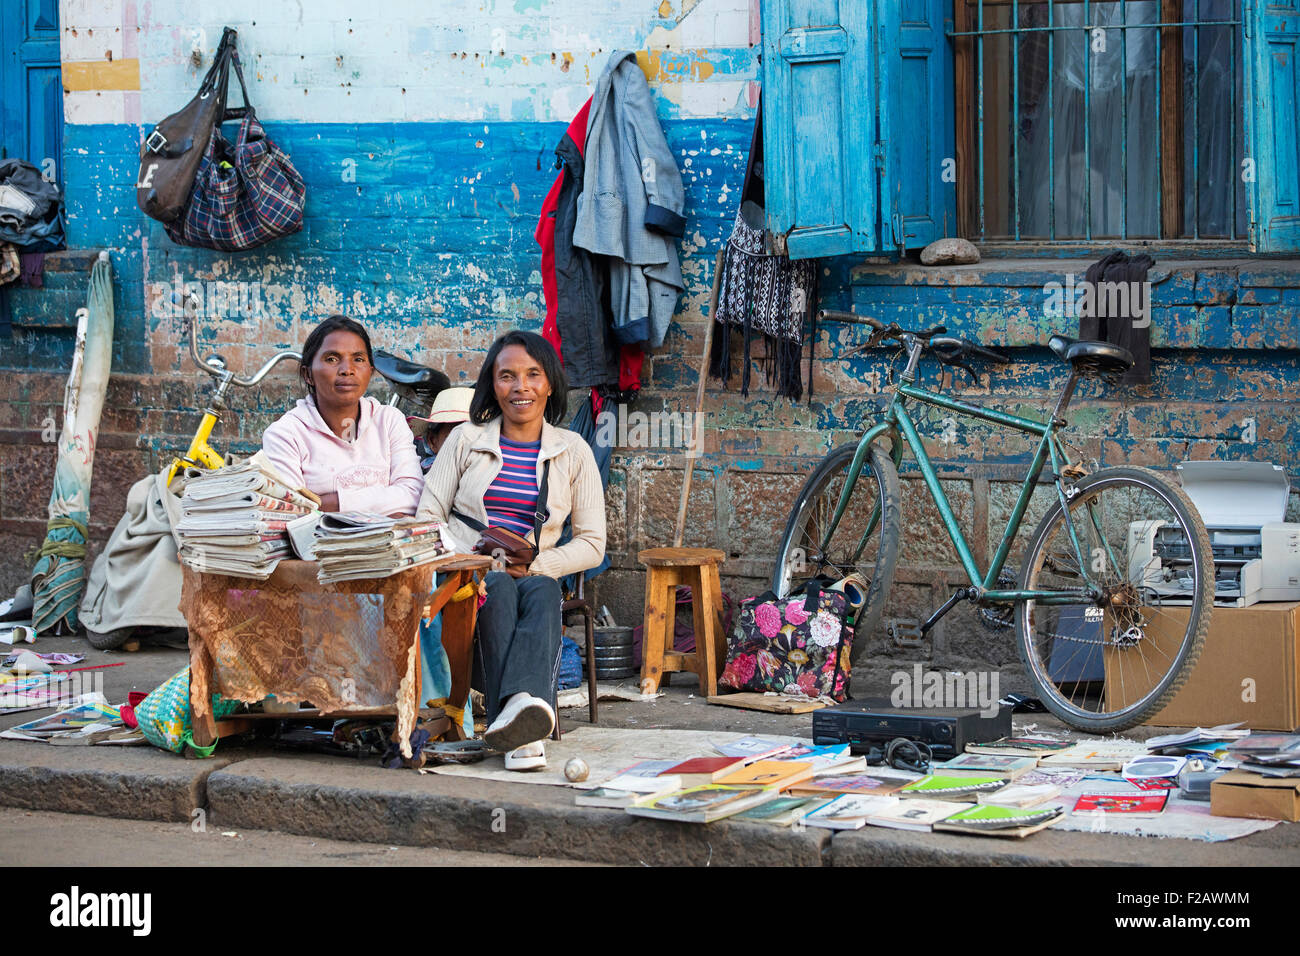 Malagasy women selling books and newspapers in the streets of the city Antsirabe, Vakinankaratra, Madagascar, Southeast - Stock Image